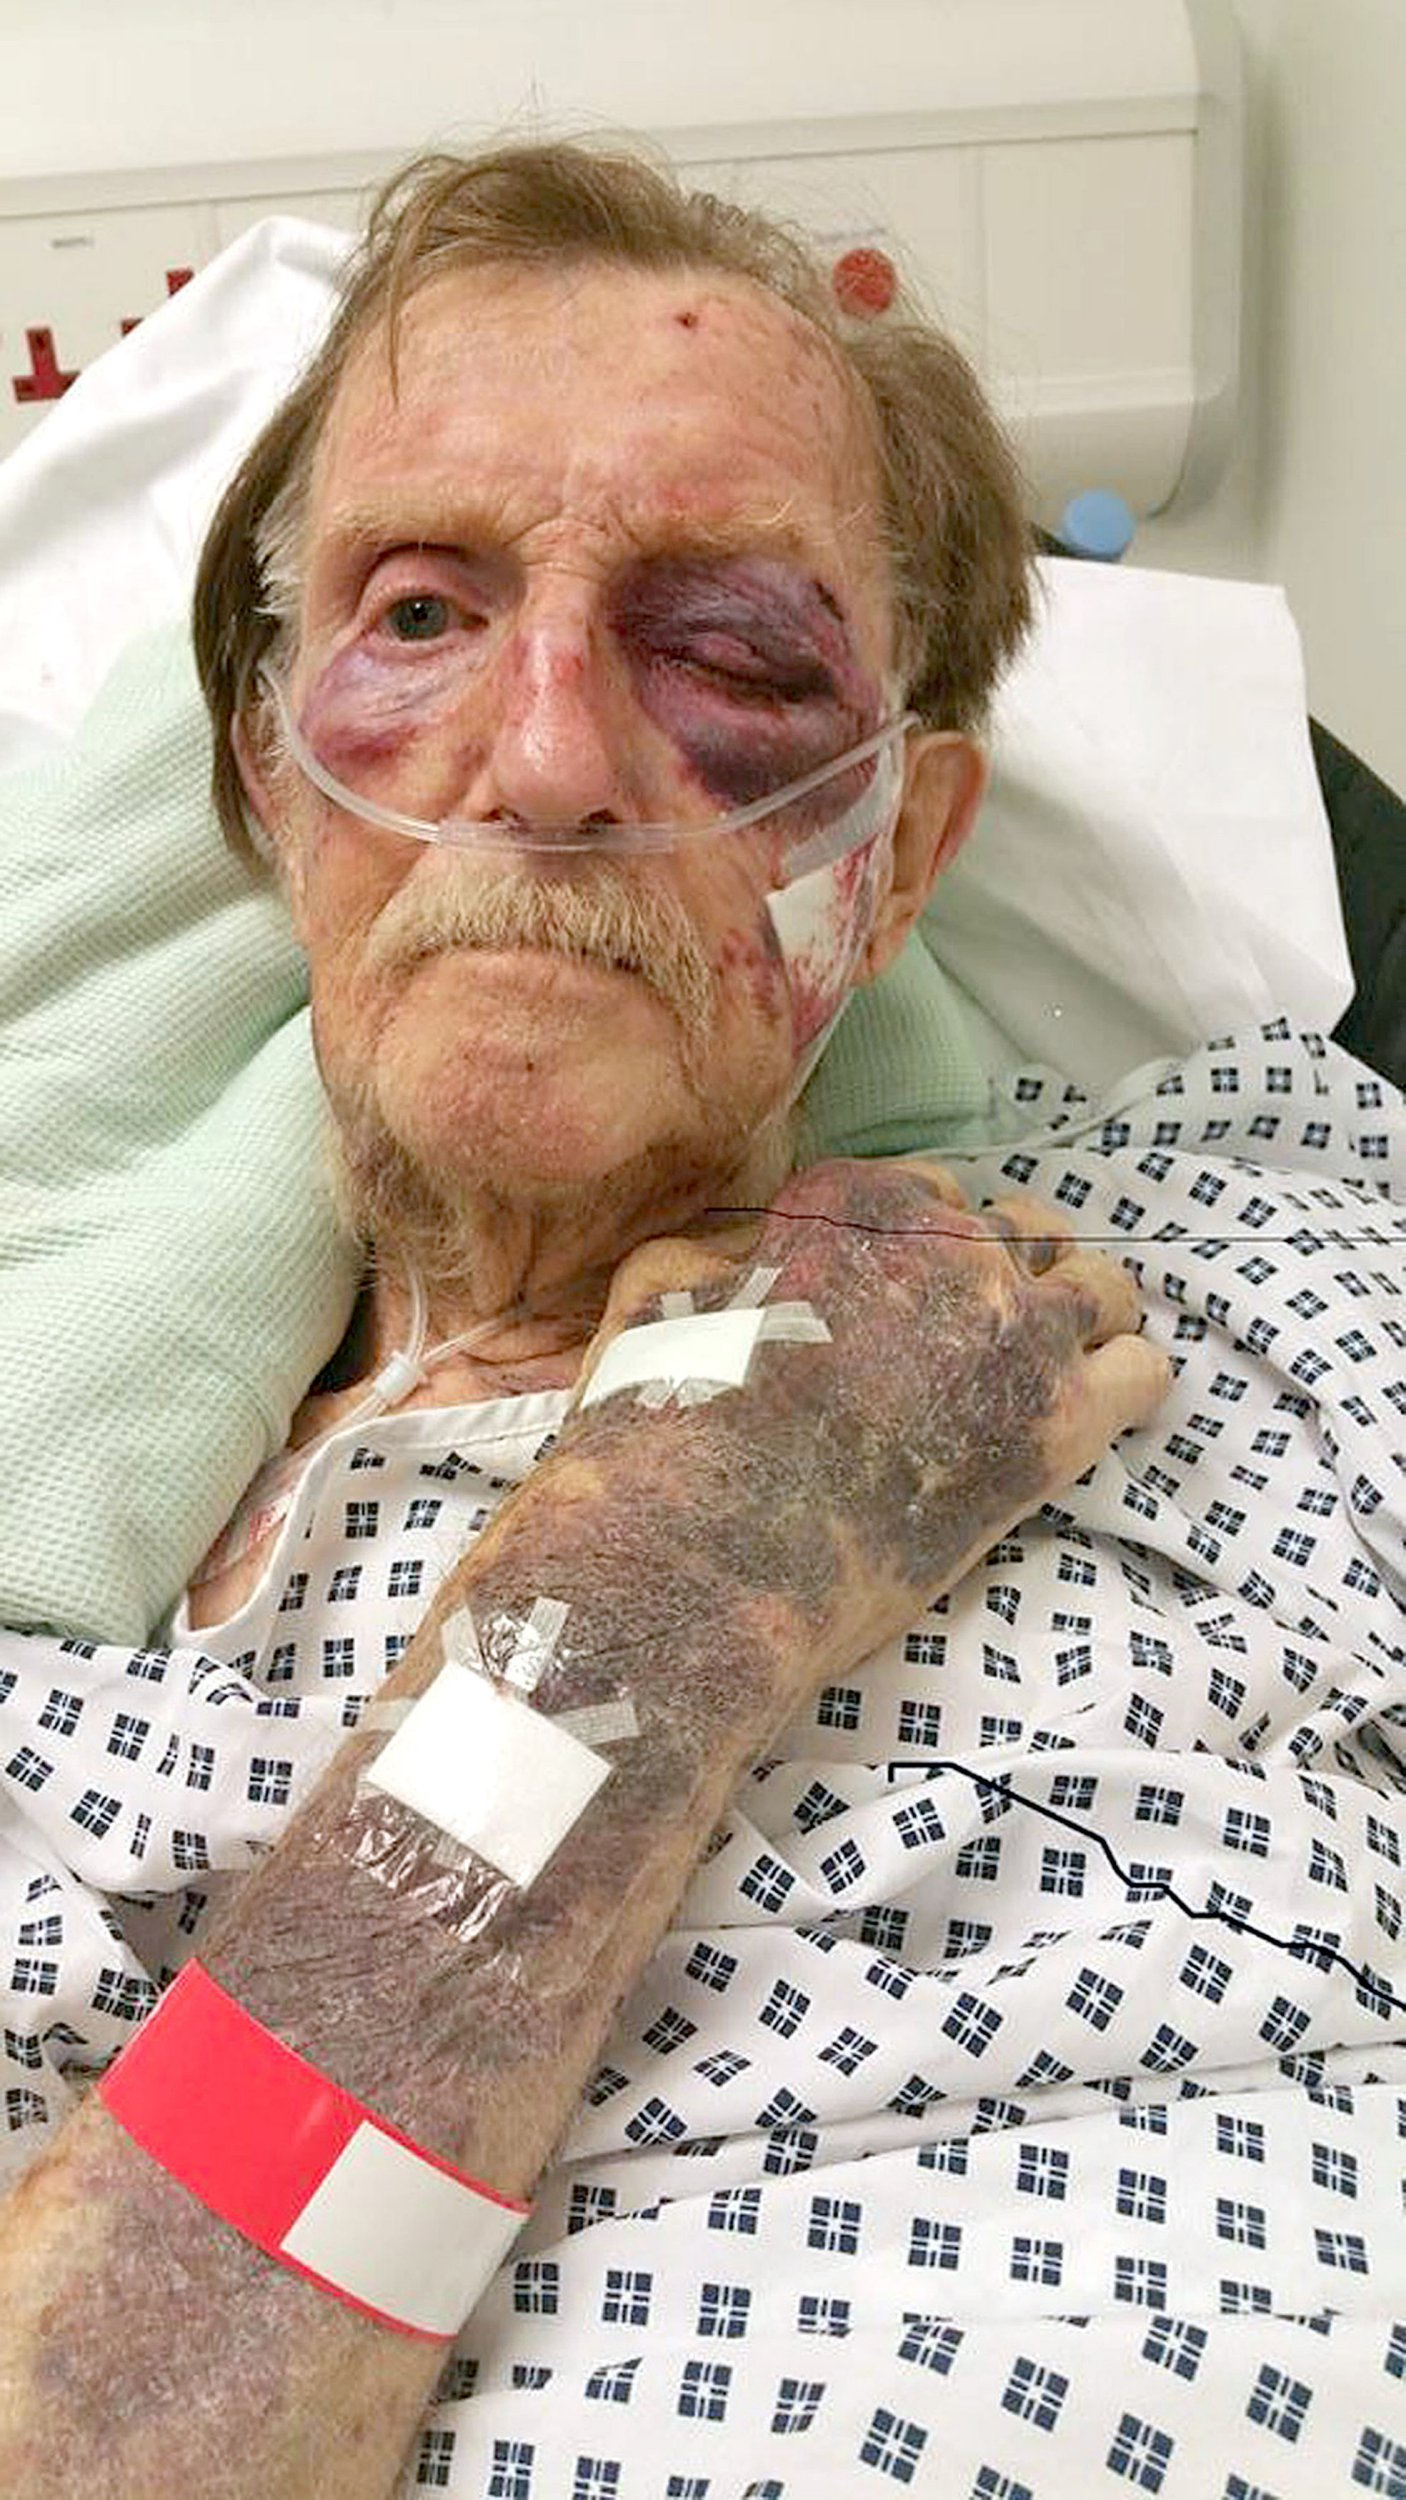 BEST QUALITY AVAILABLE Undated Staffordshire Police handout file photo of Arthur Gumbley, who died after suffering a badly bruised face and body when he was robbed in his own home in Sutton Coldfield, in November 2017. Jason Wilsher has been convicted of the murder of Mr Gumbley at Stafford Crown Court. PRESS ASSOCIATION Photo. Issue date: Thursday March 21, 2019. See PA story COURTS Gumbley. Photo credit should read: Staffordshire Police/PA Wire NOTE TO EDITORS: This handout photo may only be used in for editorial reporting purposes for the contemporaneous illustration of events, things or the people in the image or facts mentioned in the caption. Reuse of the picture may require further permission from the copyright holder.